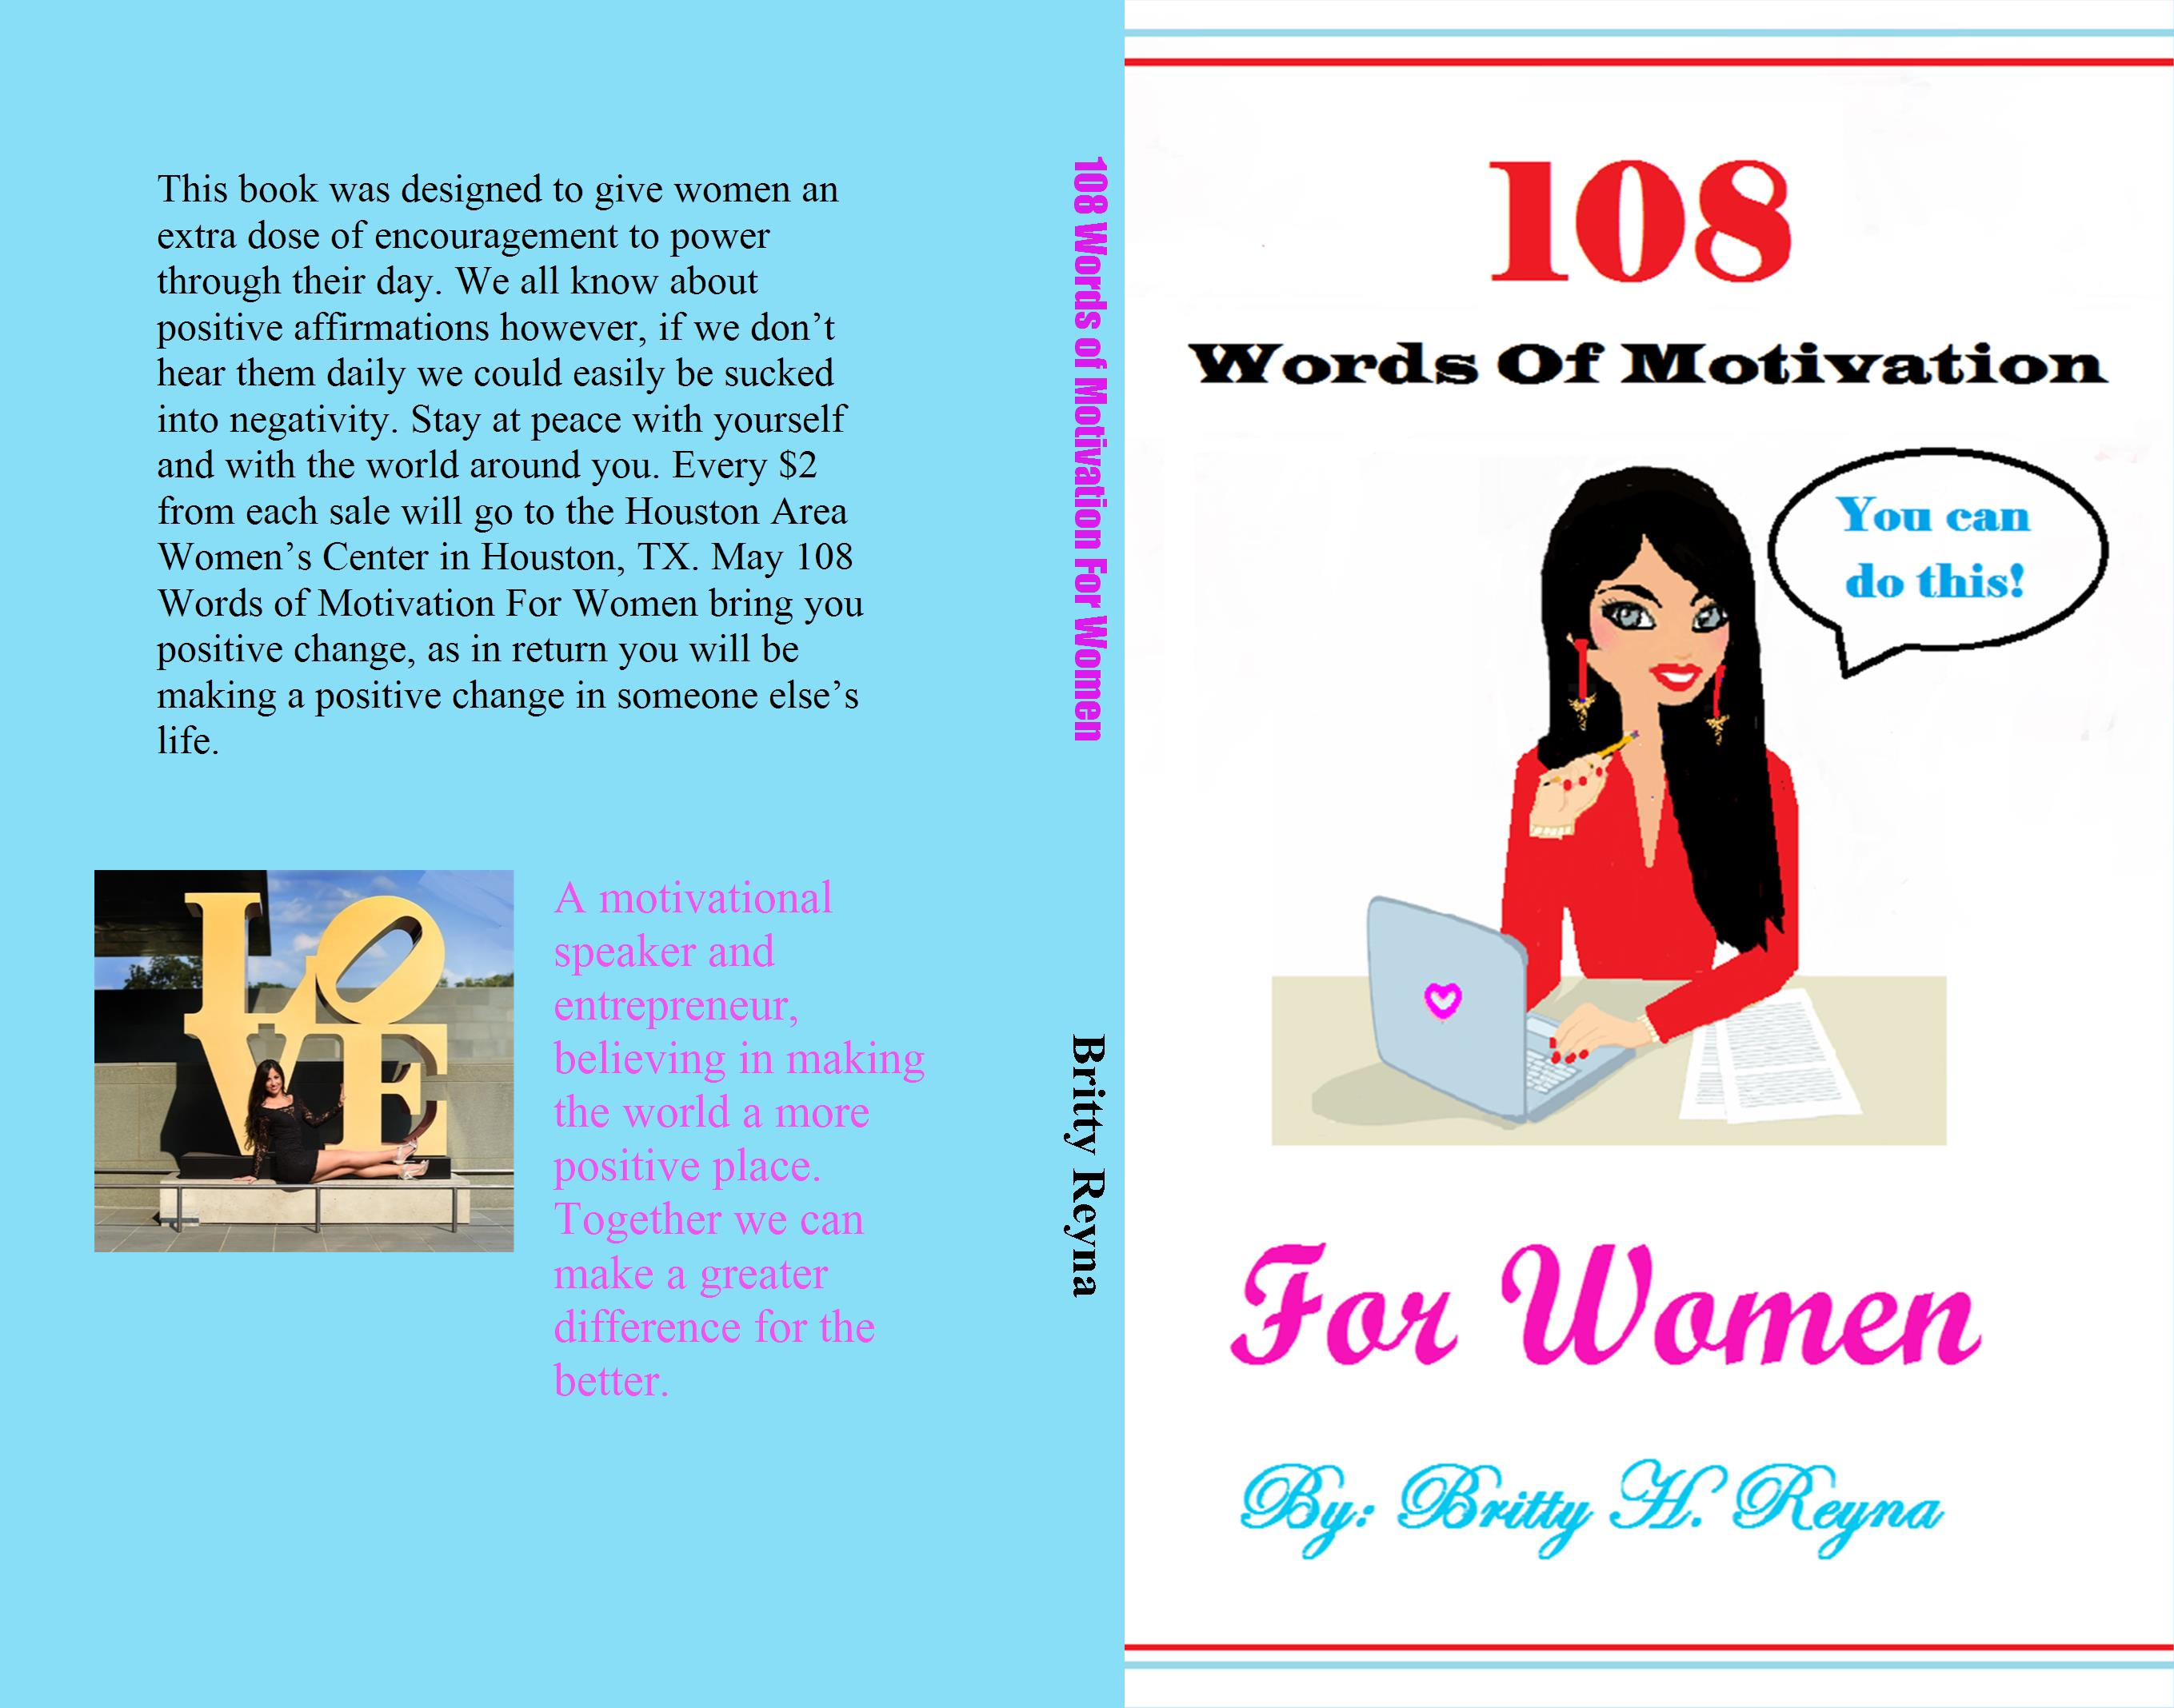 108 Words of Motivation For Women cover image